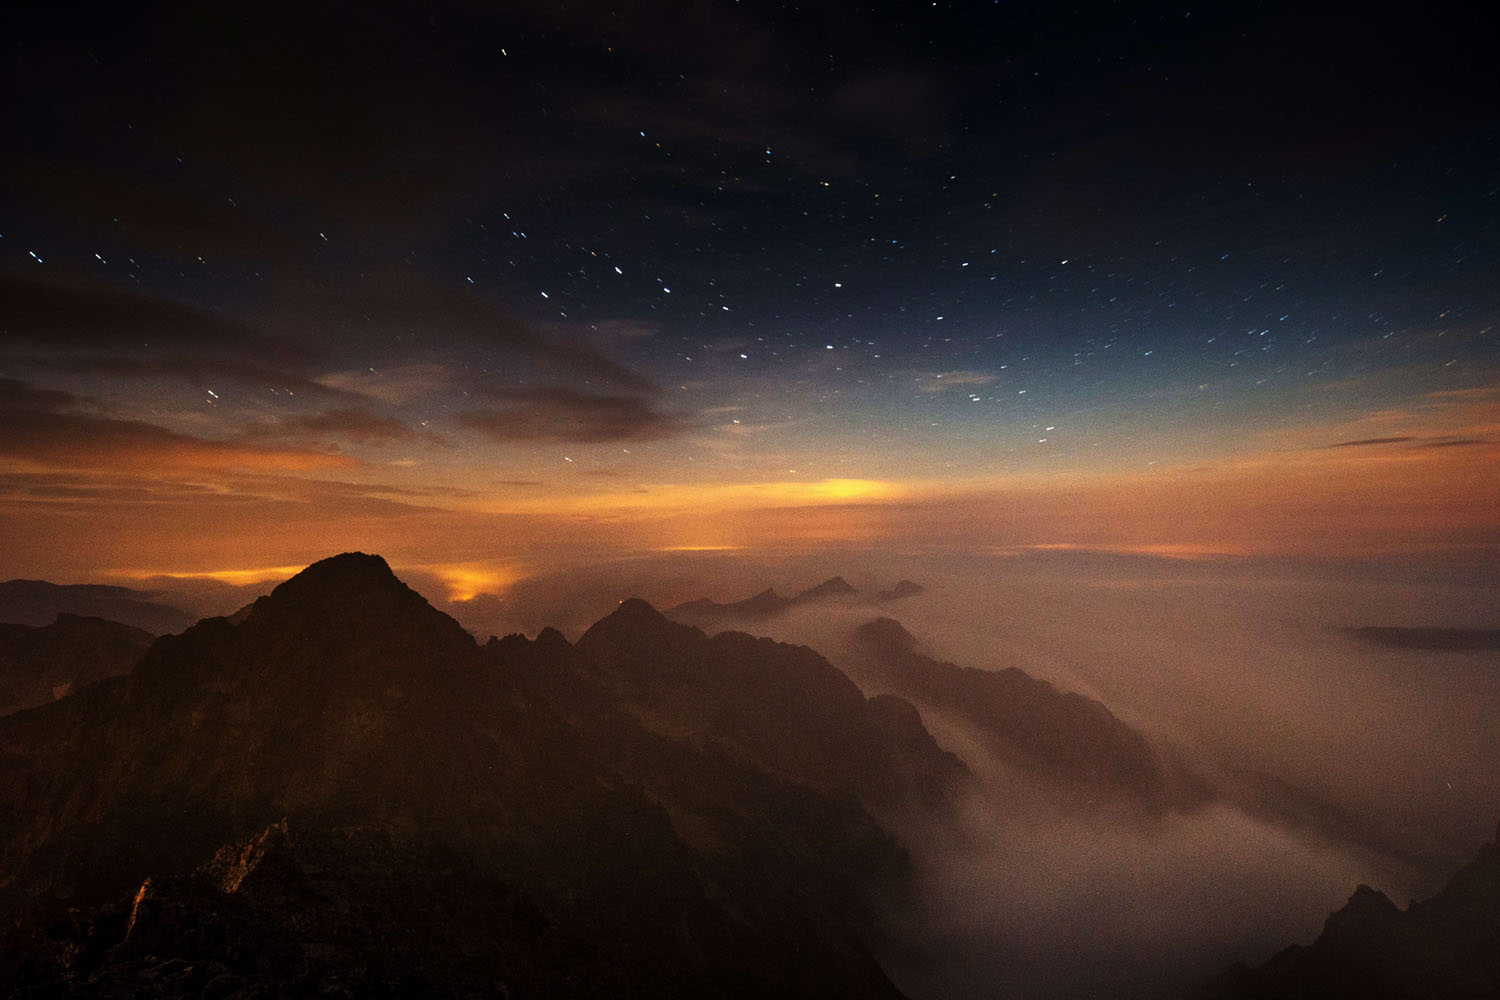 Sept. 4, 2014. A long time exposed picture taken by night shows Slovakia's High Tatras mountains seen from the Solar observatory station on the Lomnicky Stit peak.